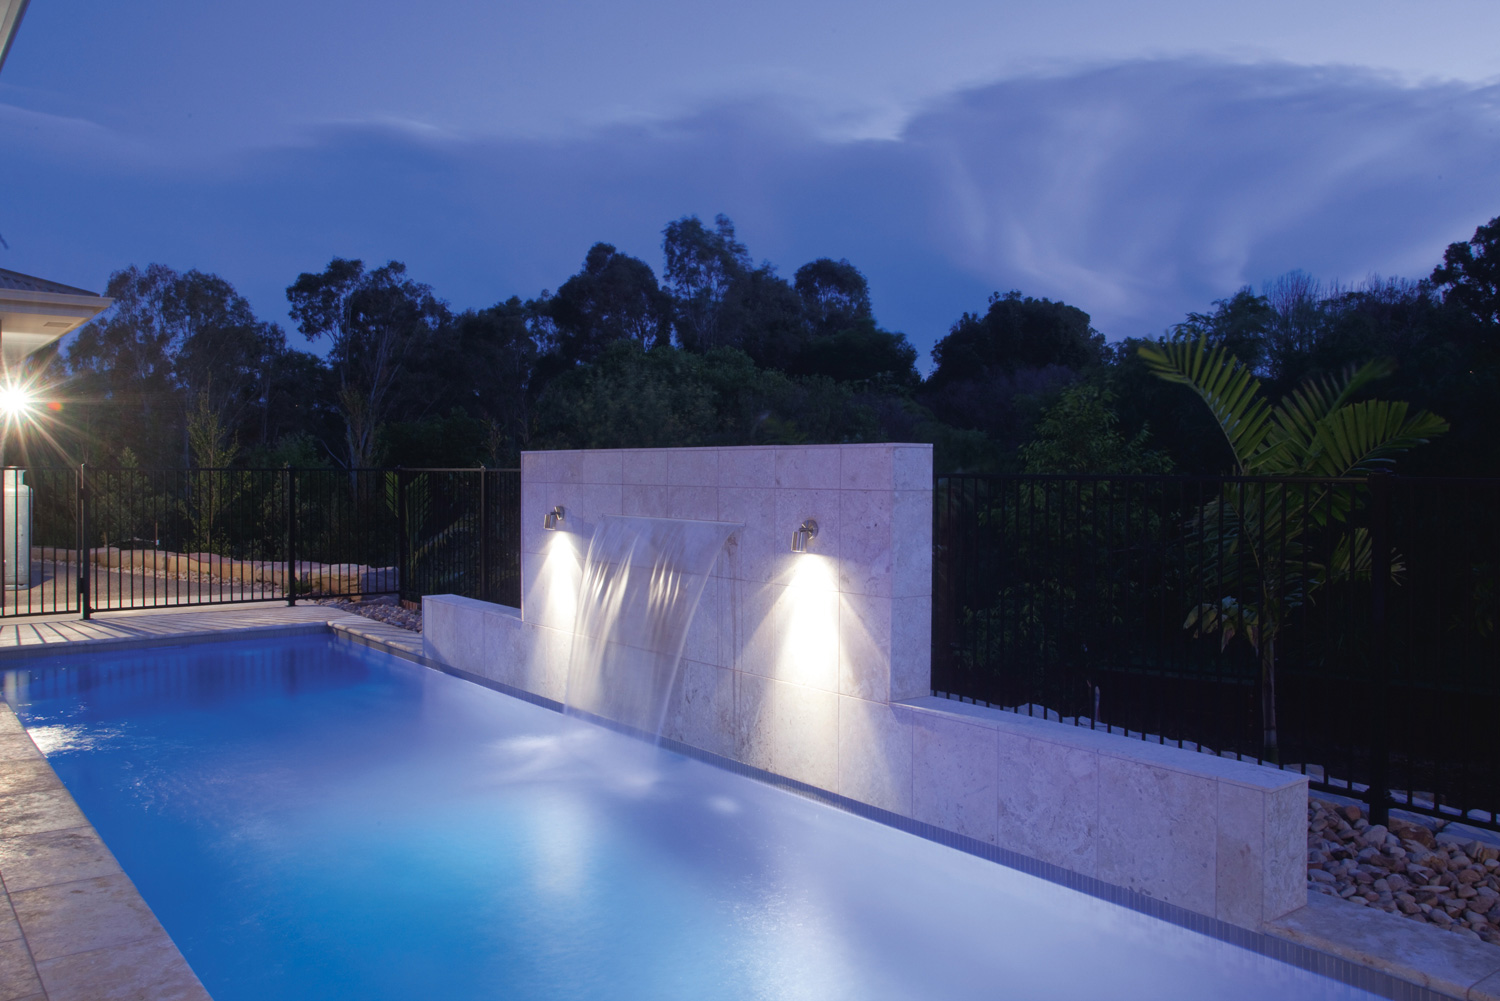 Pool with Water Feature and Custom made lights at night time